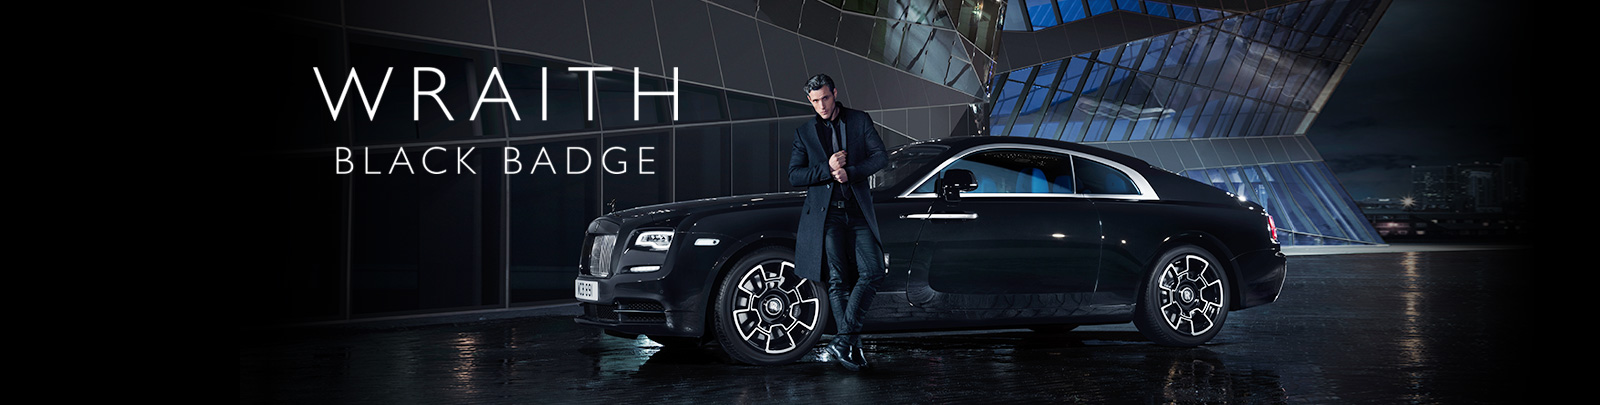 Wraith Black Badge